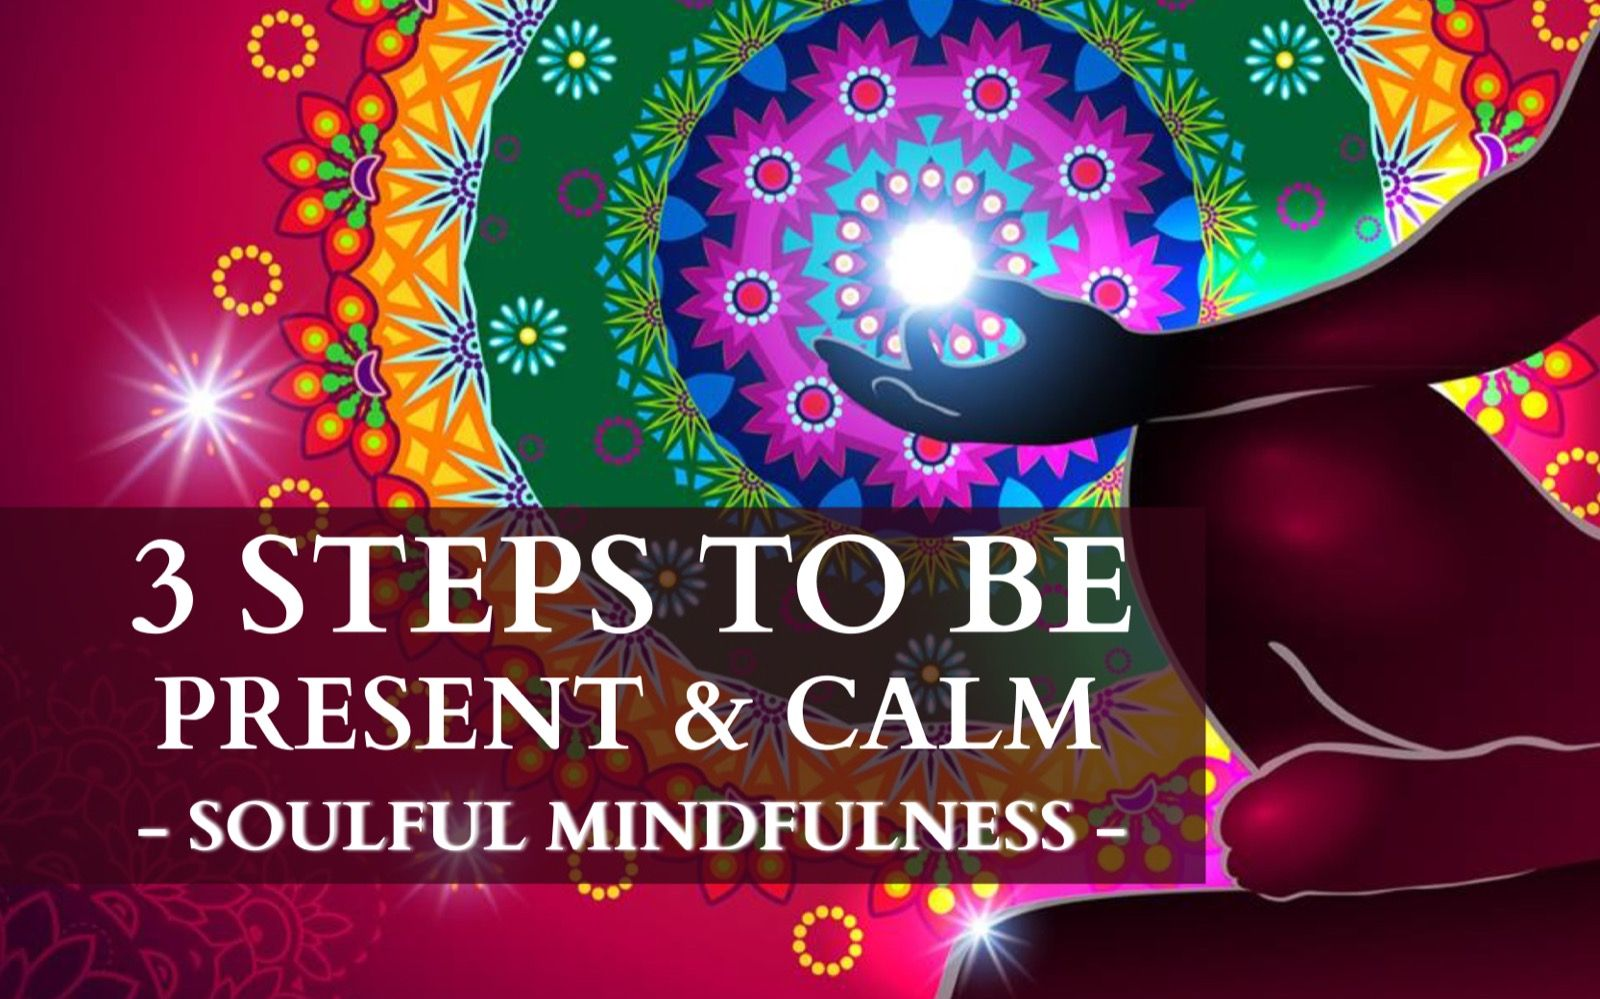 3 Steps To Be Present & Calm - Soulful Mindfulness -